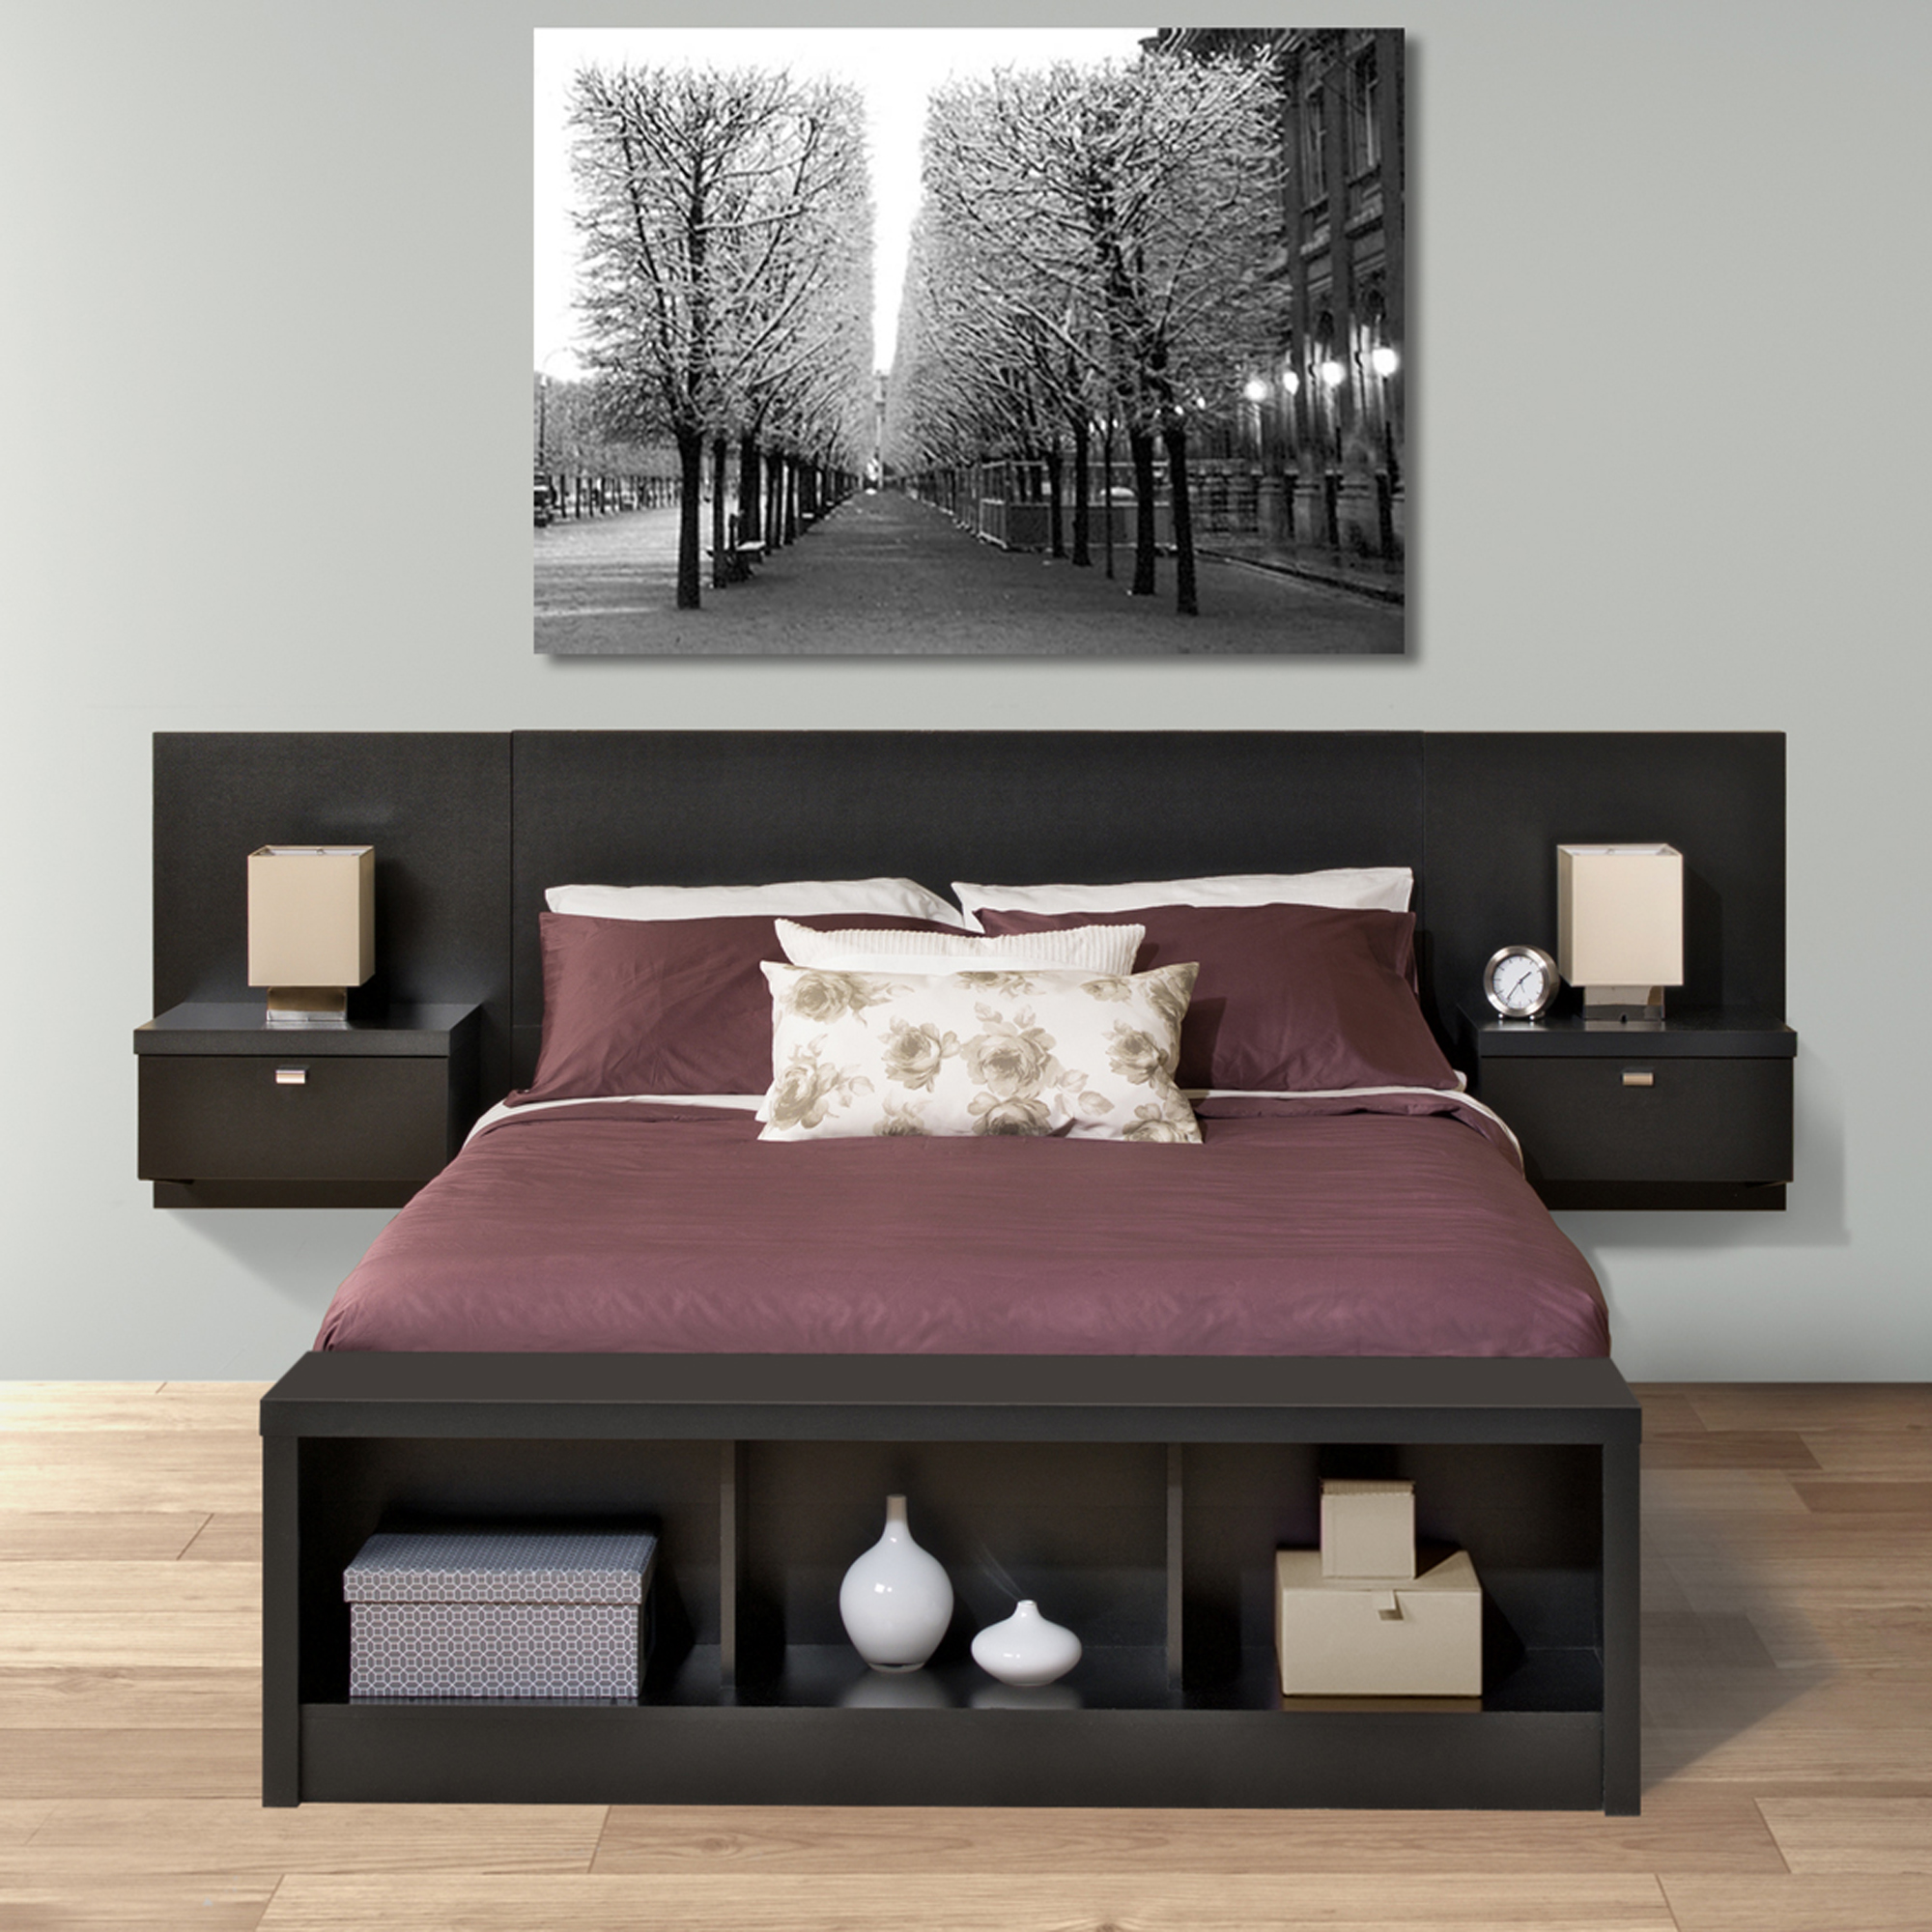 Prepac Black Series 9 Designer Floating Queen Headboard with Nightstands by Prepac Manufacturing Ltd